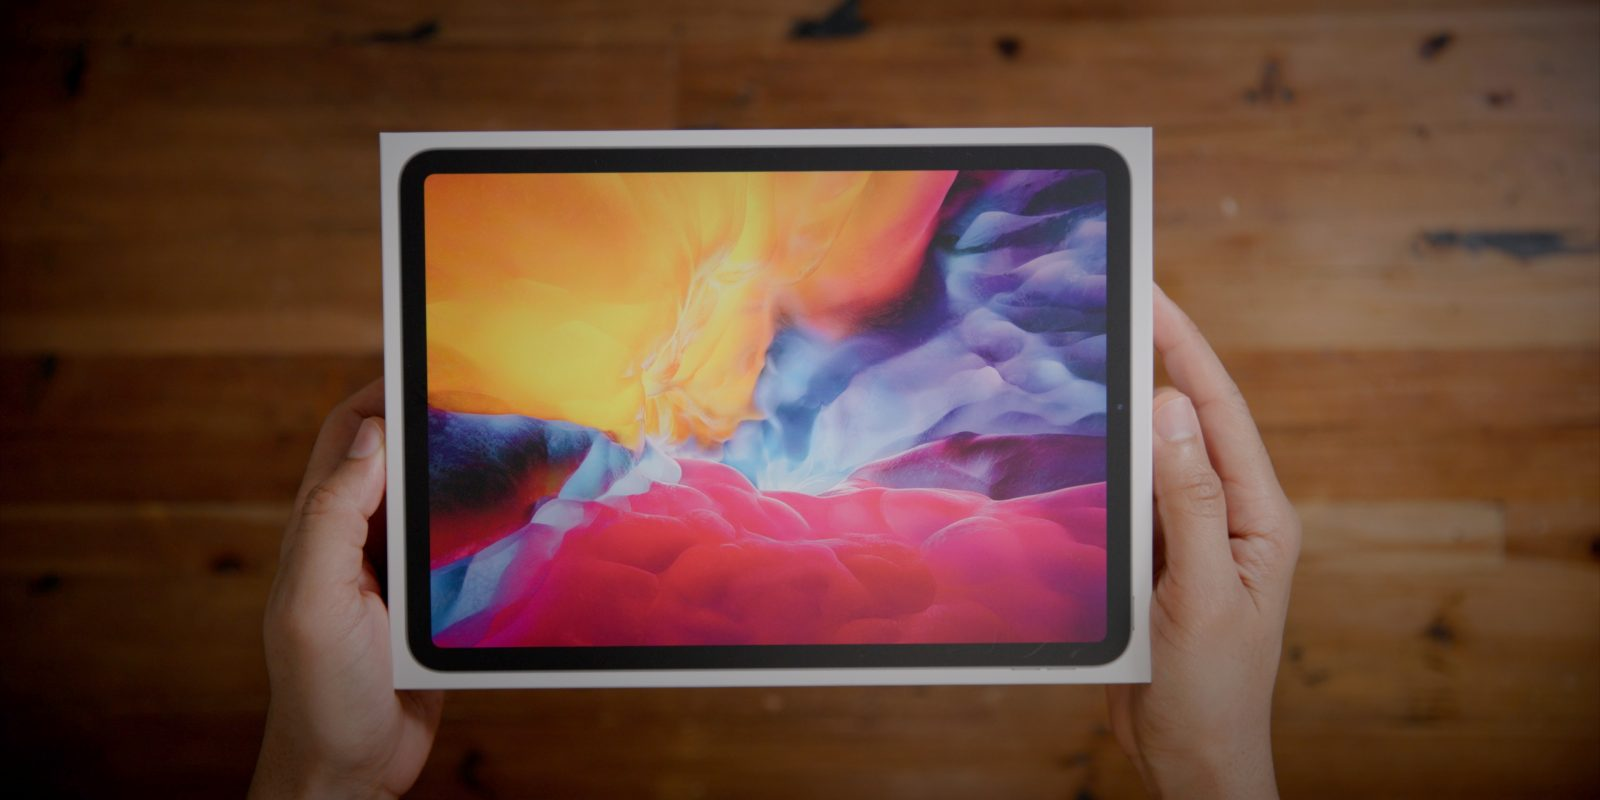 iPad Pro (2020) top features and impressions - 9to5Mac